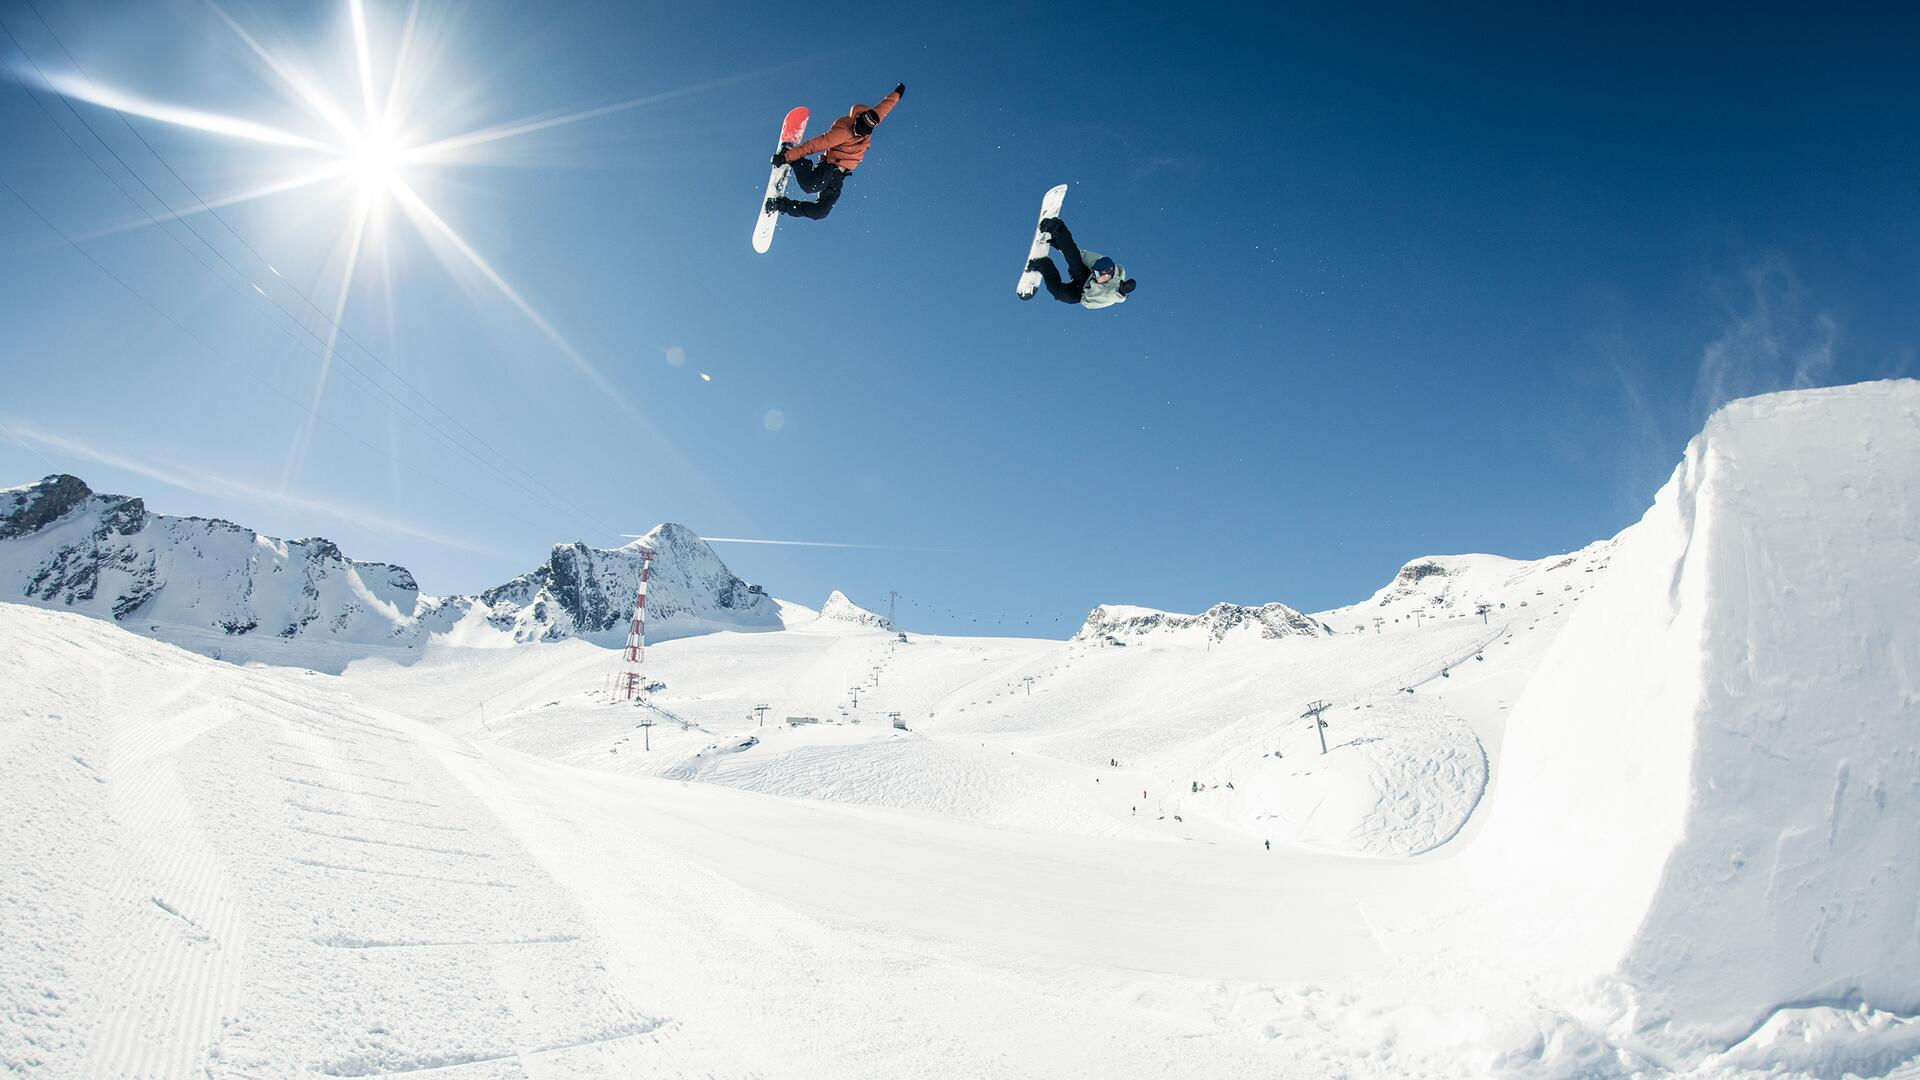 Freestyle Action at the Snowpark Kitzsteinhorn | © Kitzsteinhorn